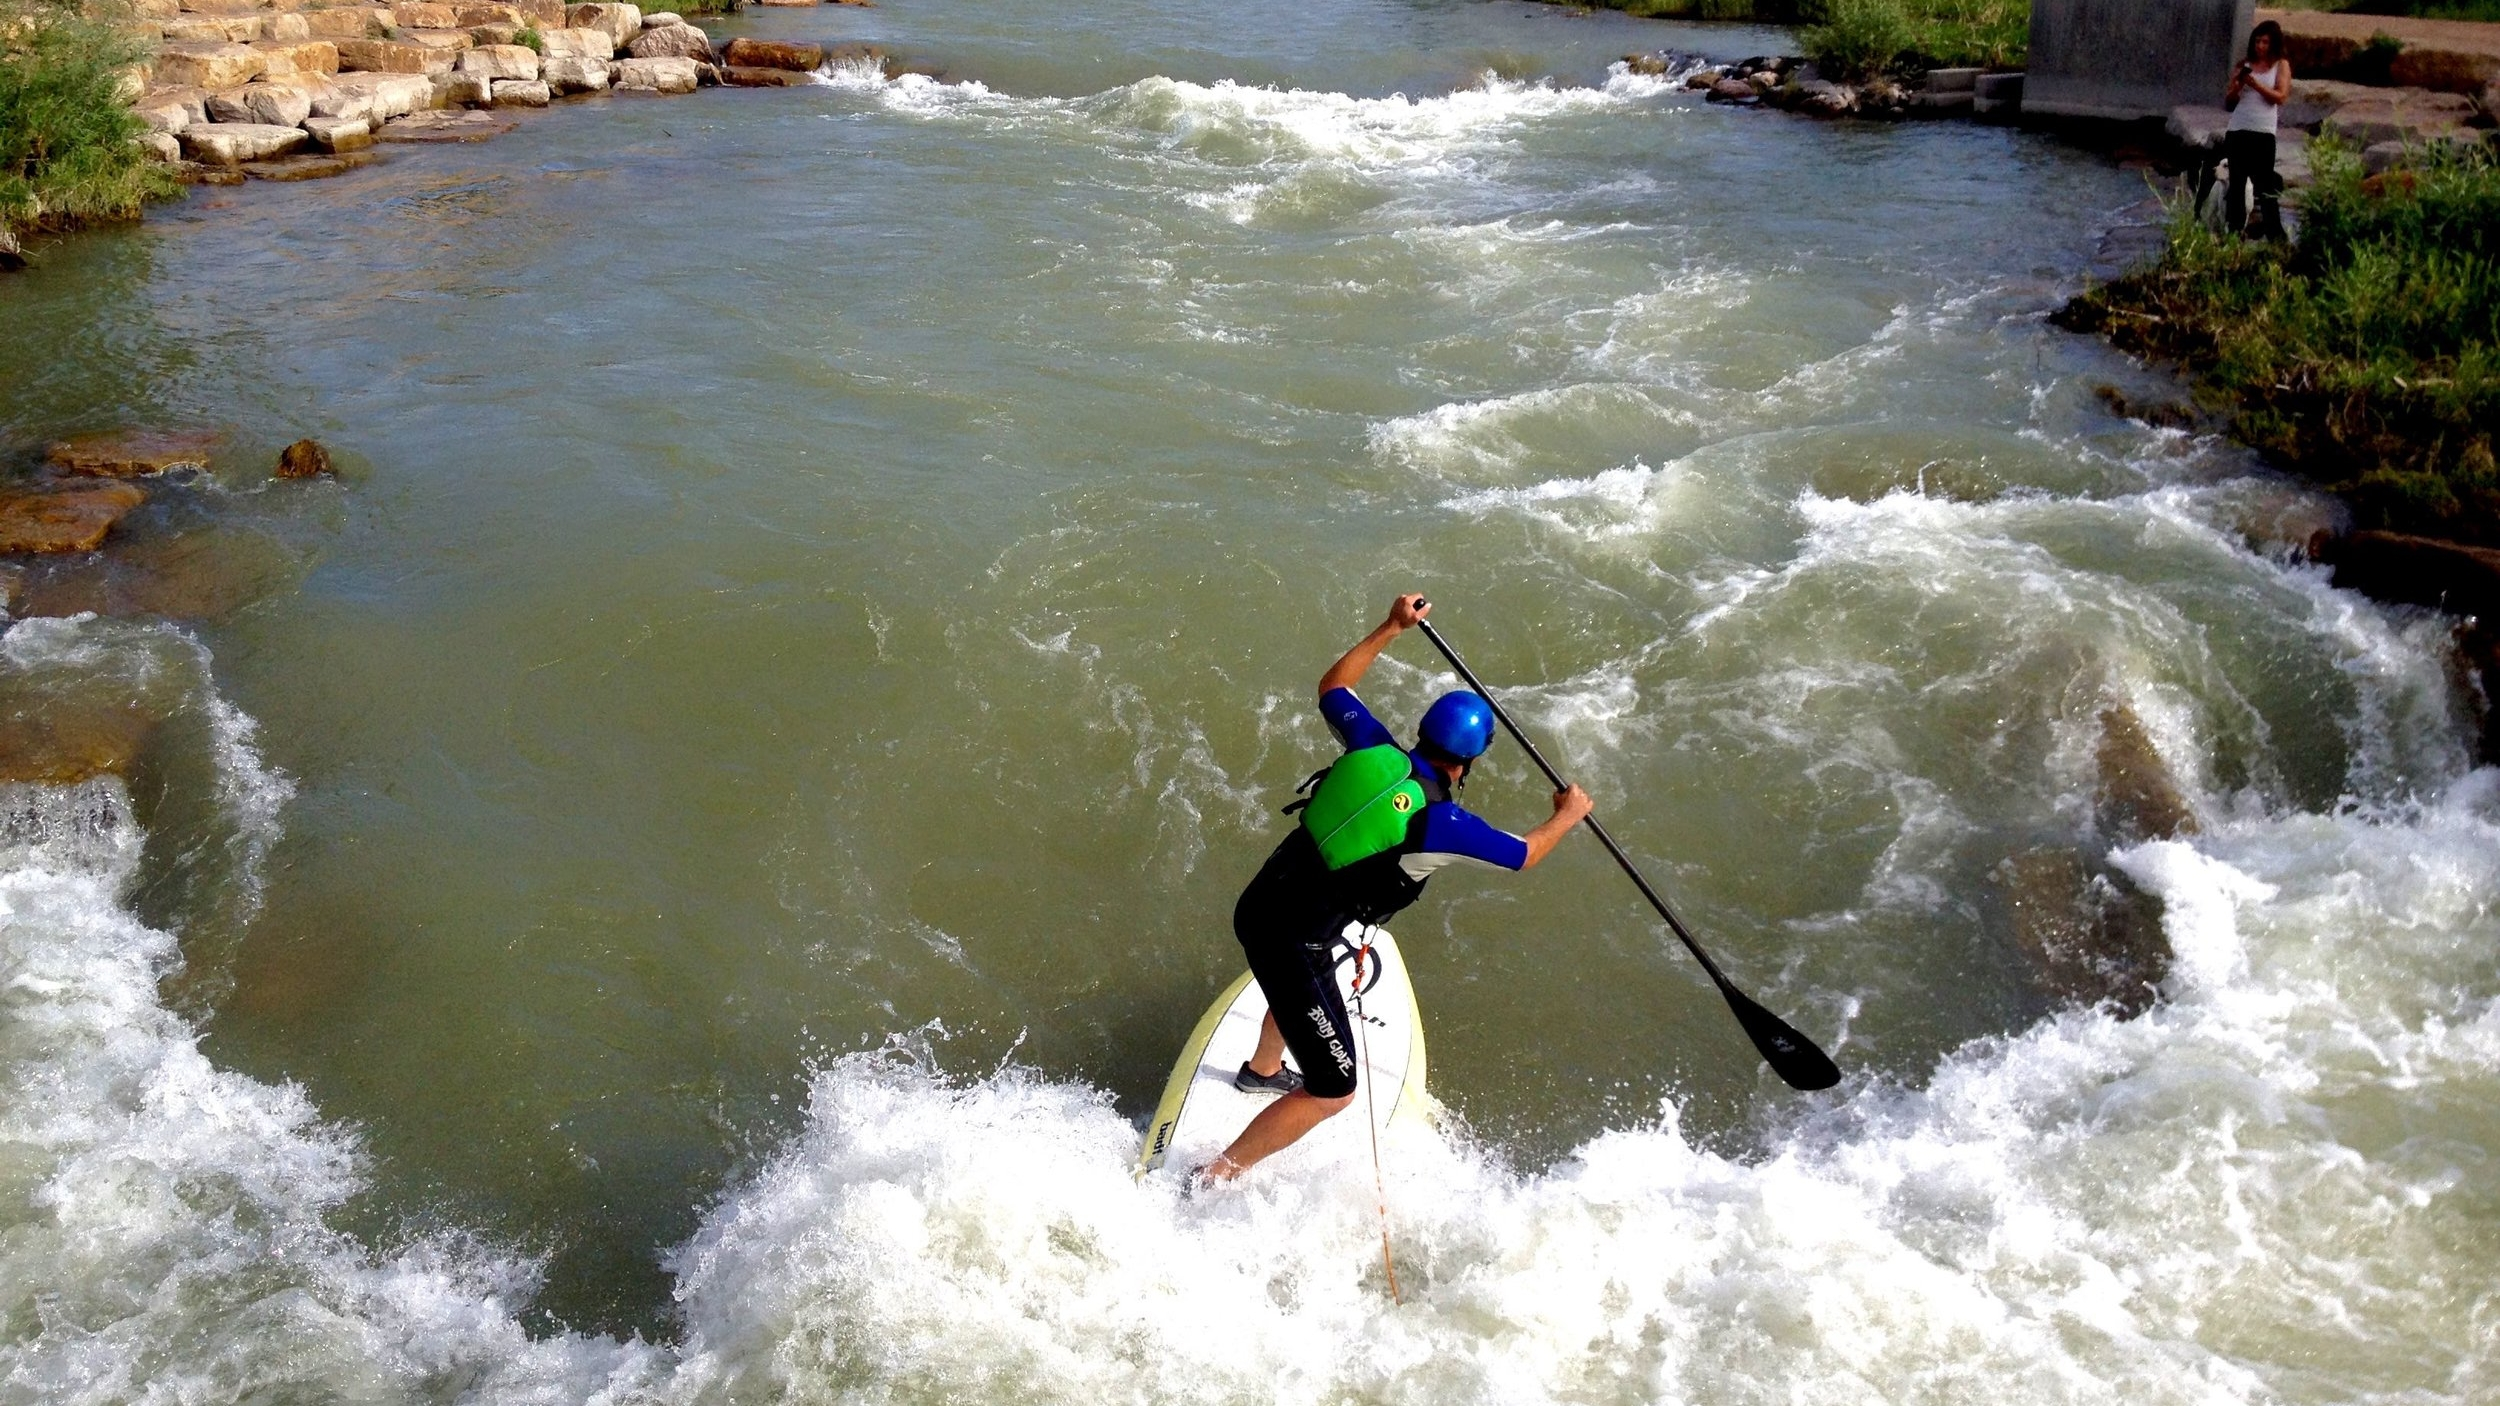 SUP surfing Montrose Colorado Watersports Park at Riverbottom Park